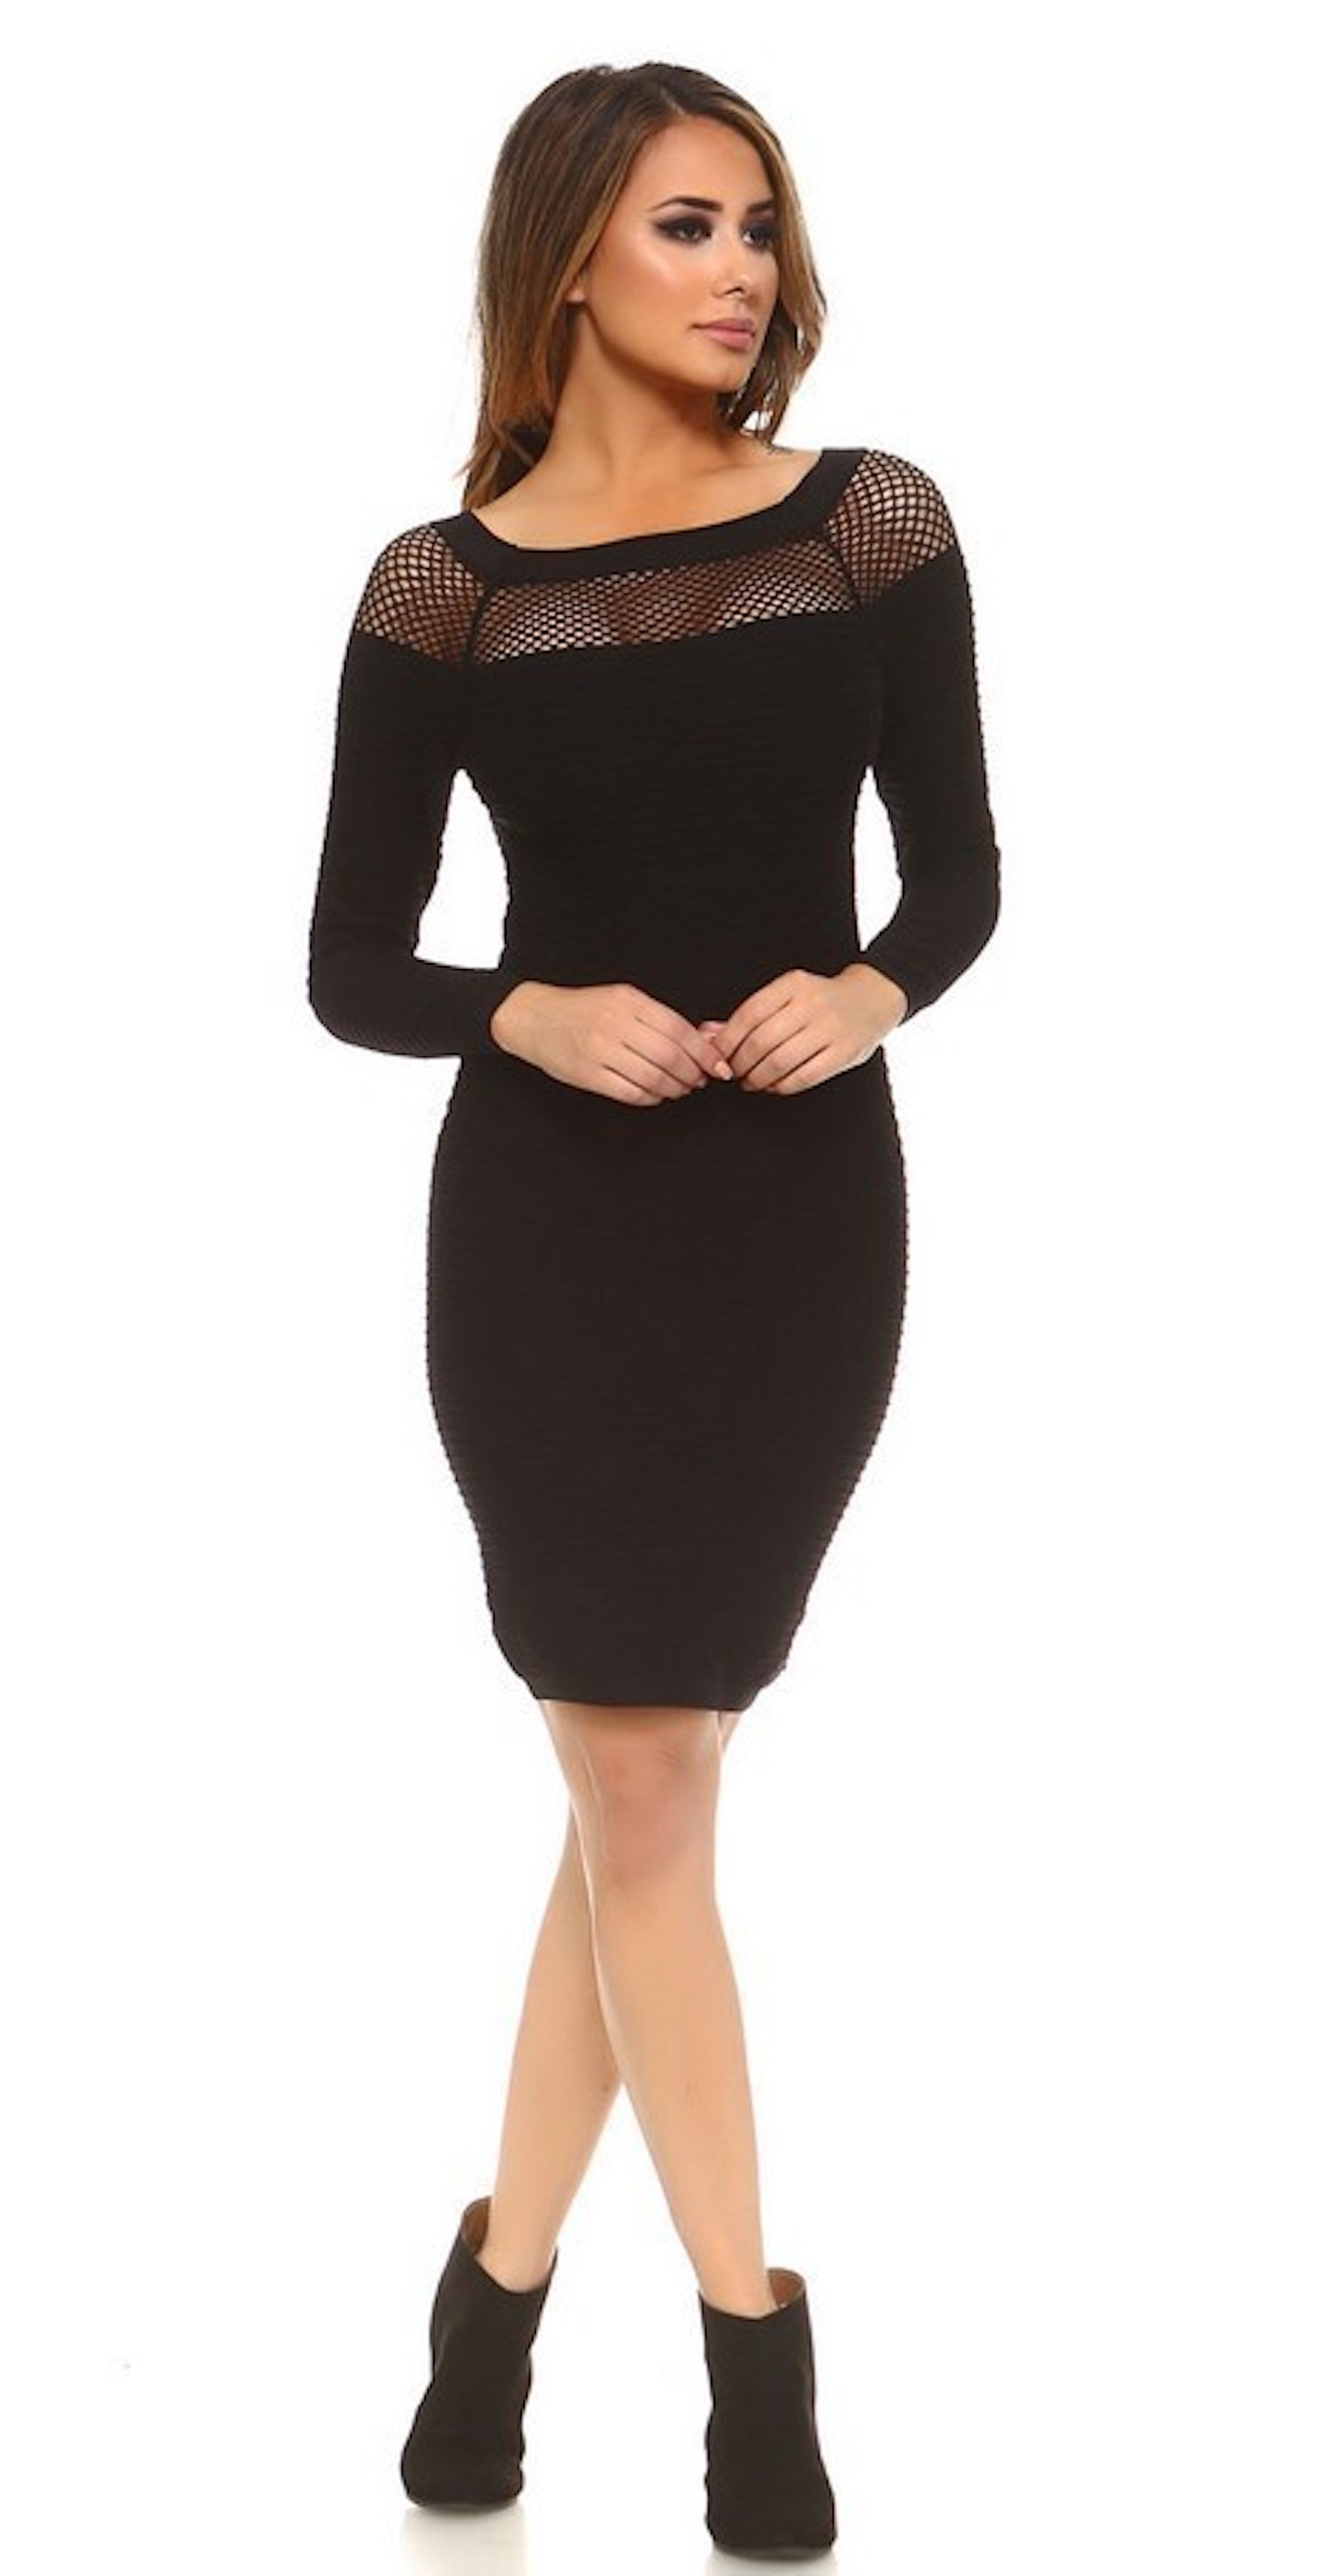 netted neckline black bodycon bandage curve hugging shape formal casual knee length fashion clothing woman trending style